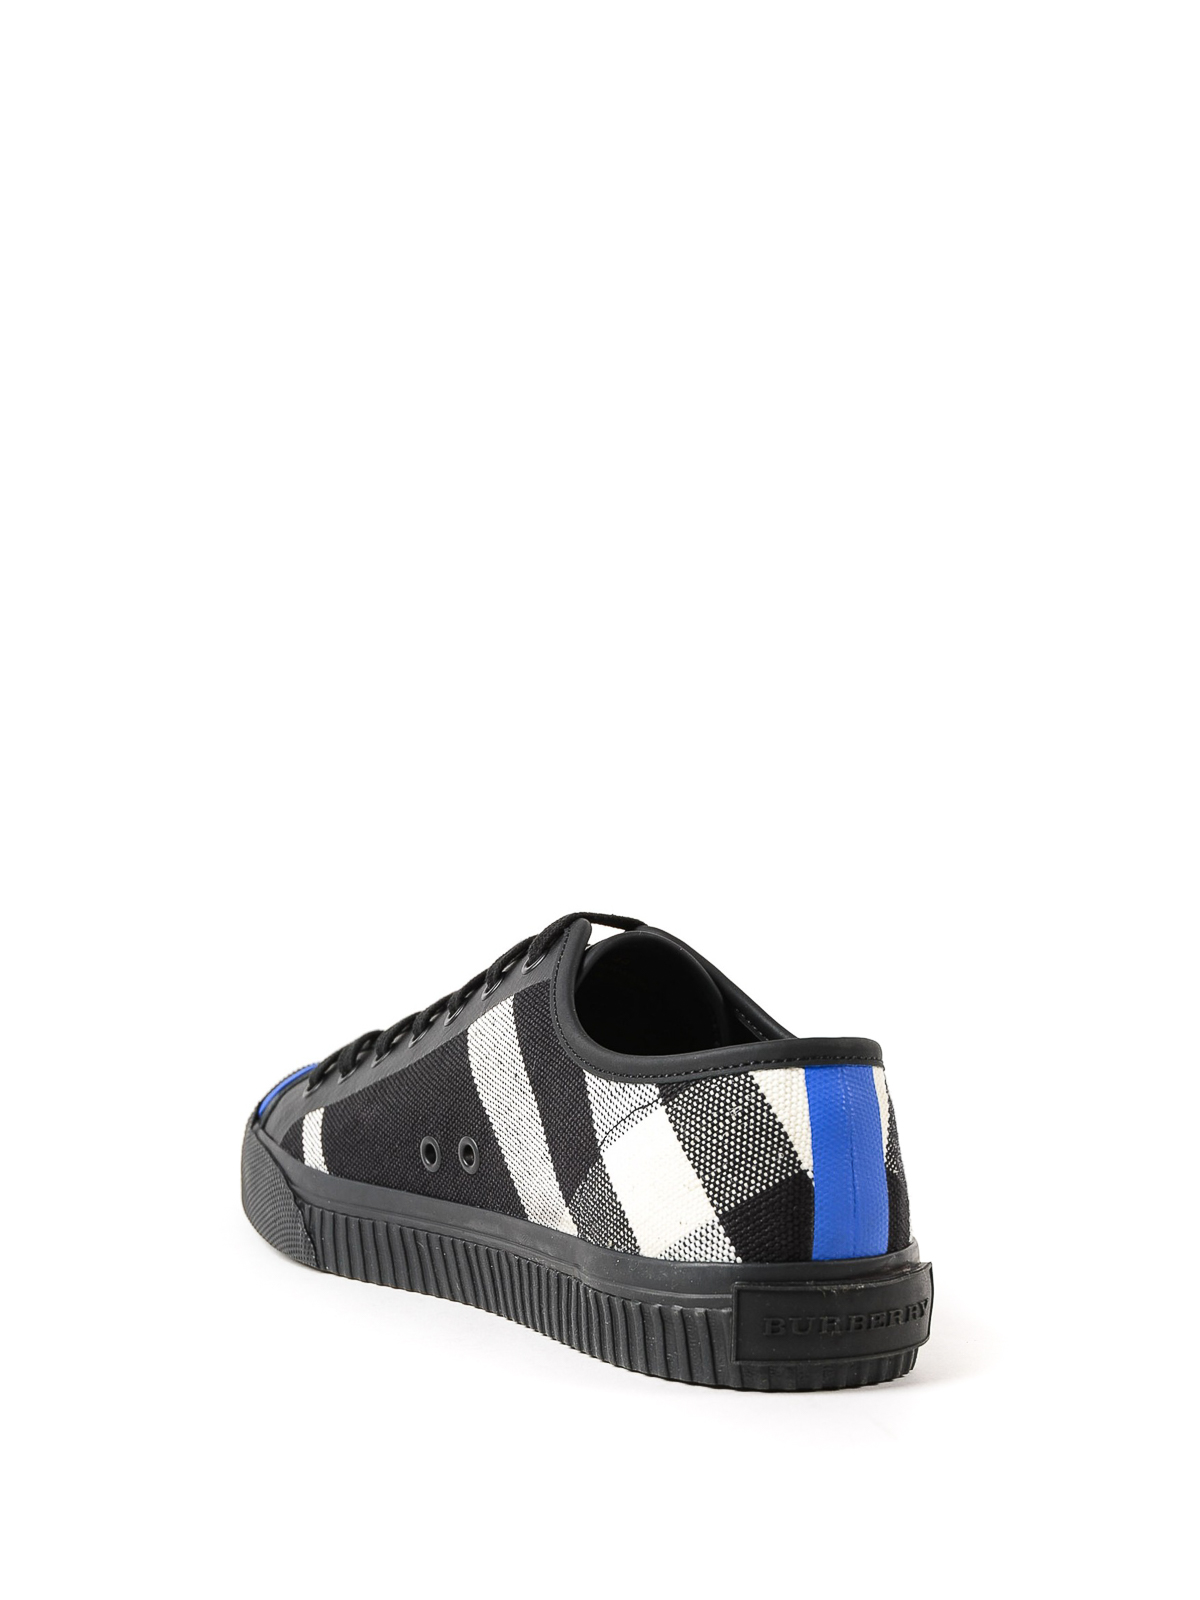 Burberry - Black check canvas sneakers